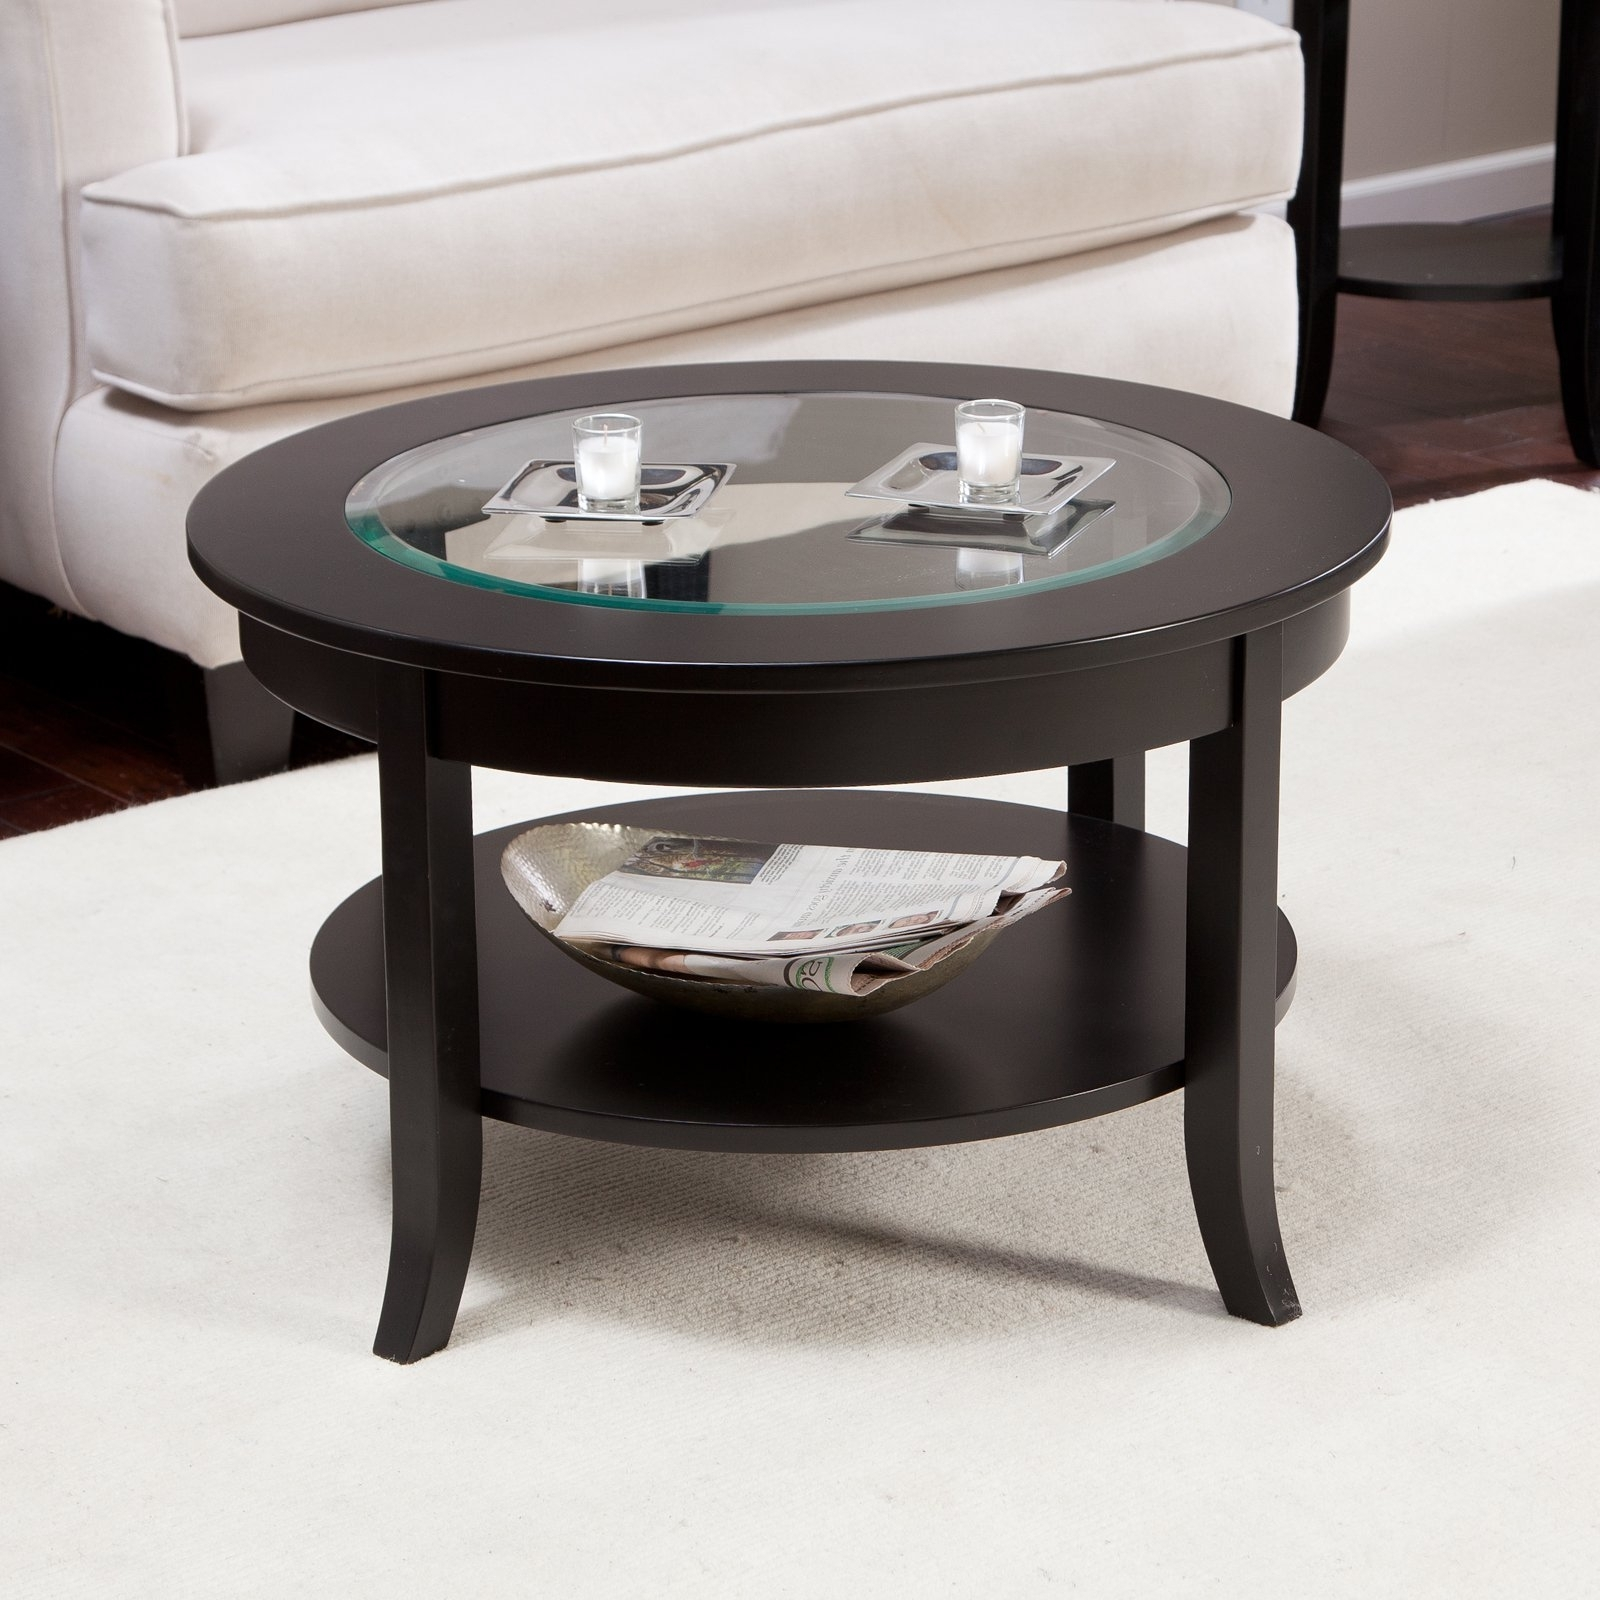 Exciting Small Glass Coffee Table Style Design (View 4 of 20)